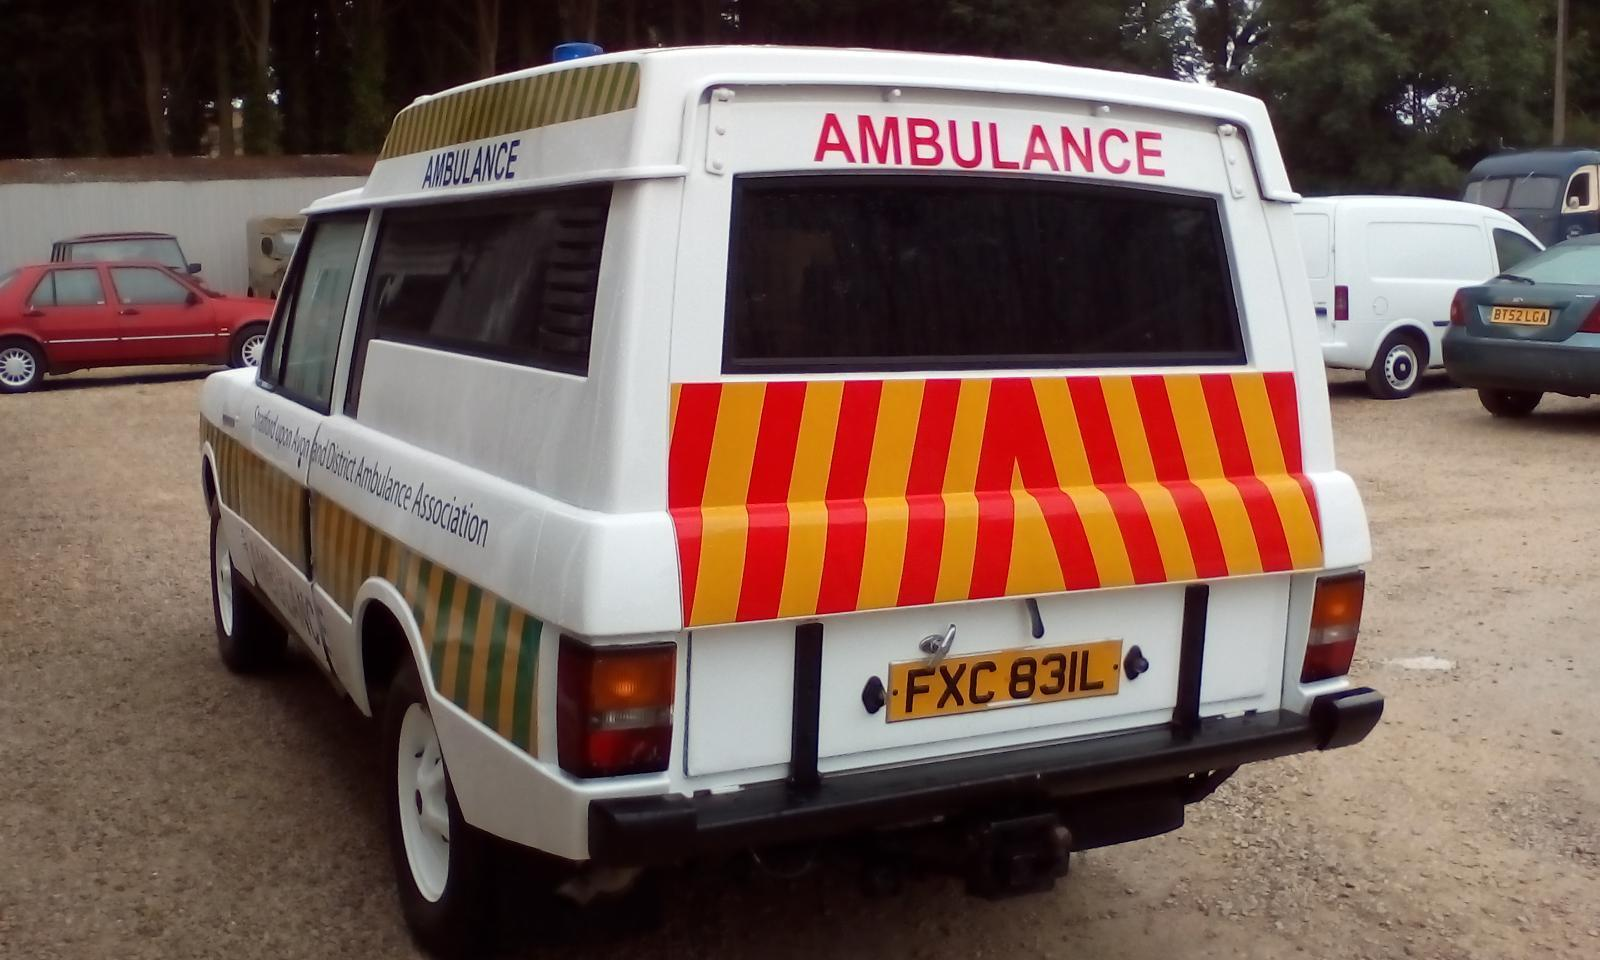 Land Rover Katy Ambulances 1957 S1 Wiring Diagram Themselves For Approximately Seven Months Although Unregistered Until 1997 It Was Subsequently Purchased By Stratford Upon Avon St Johns